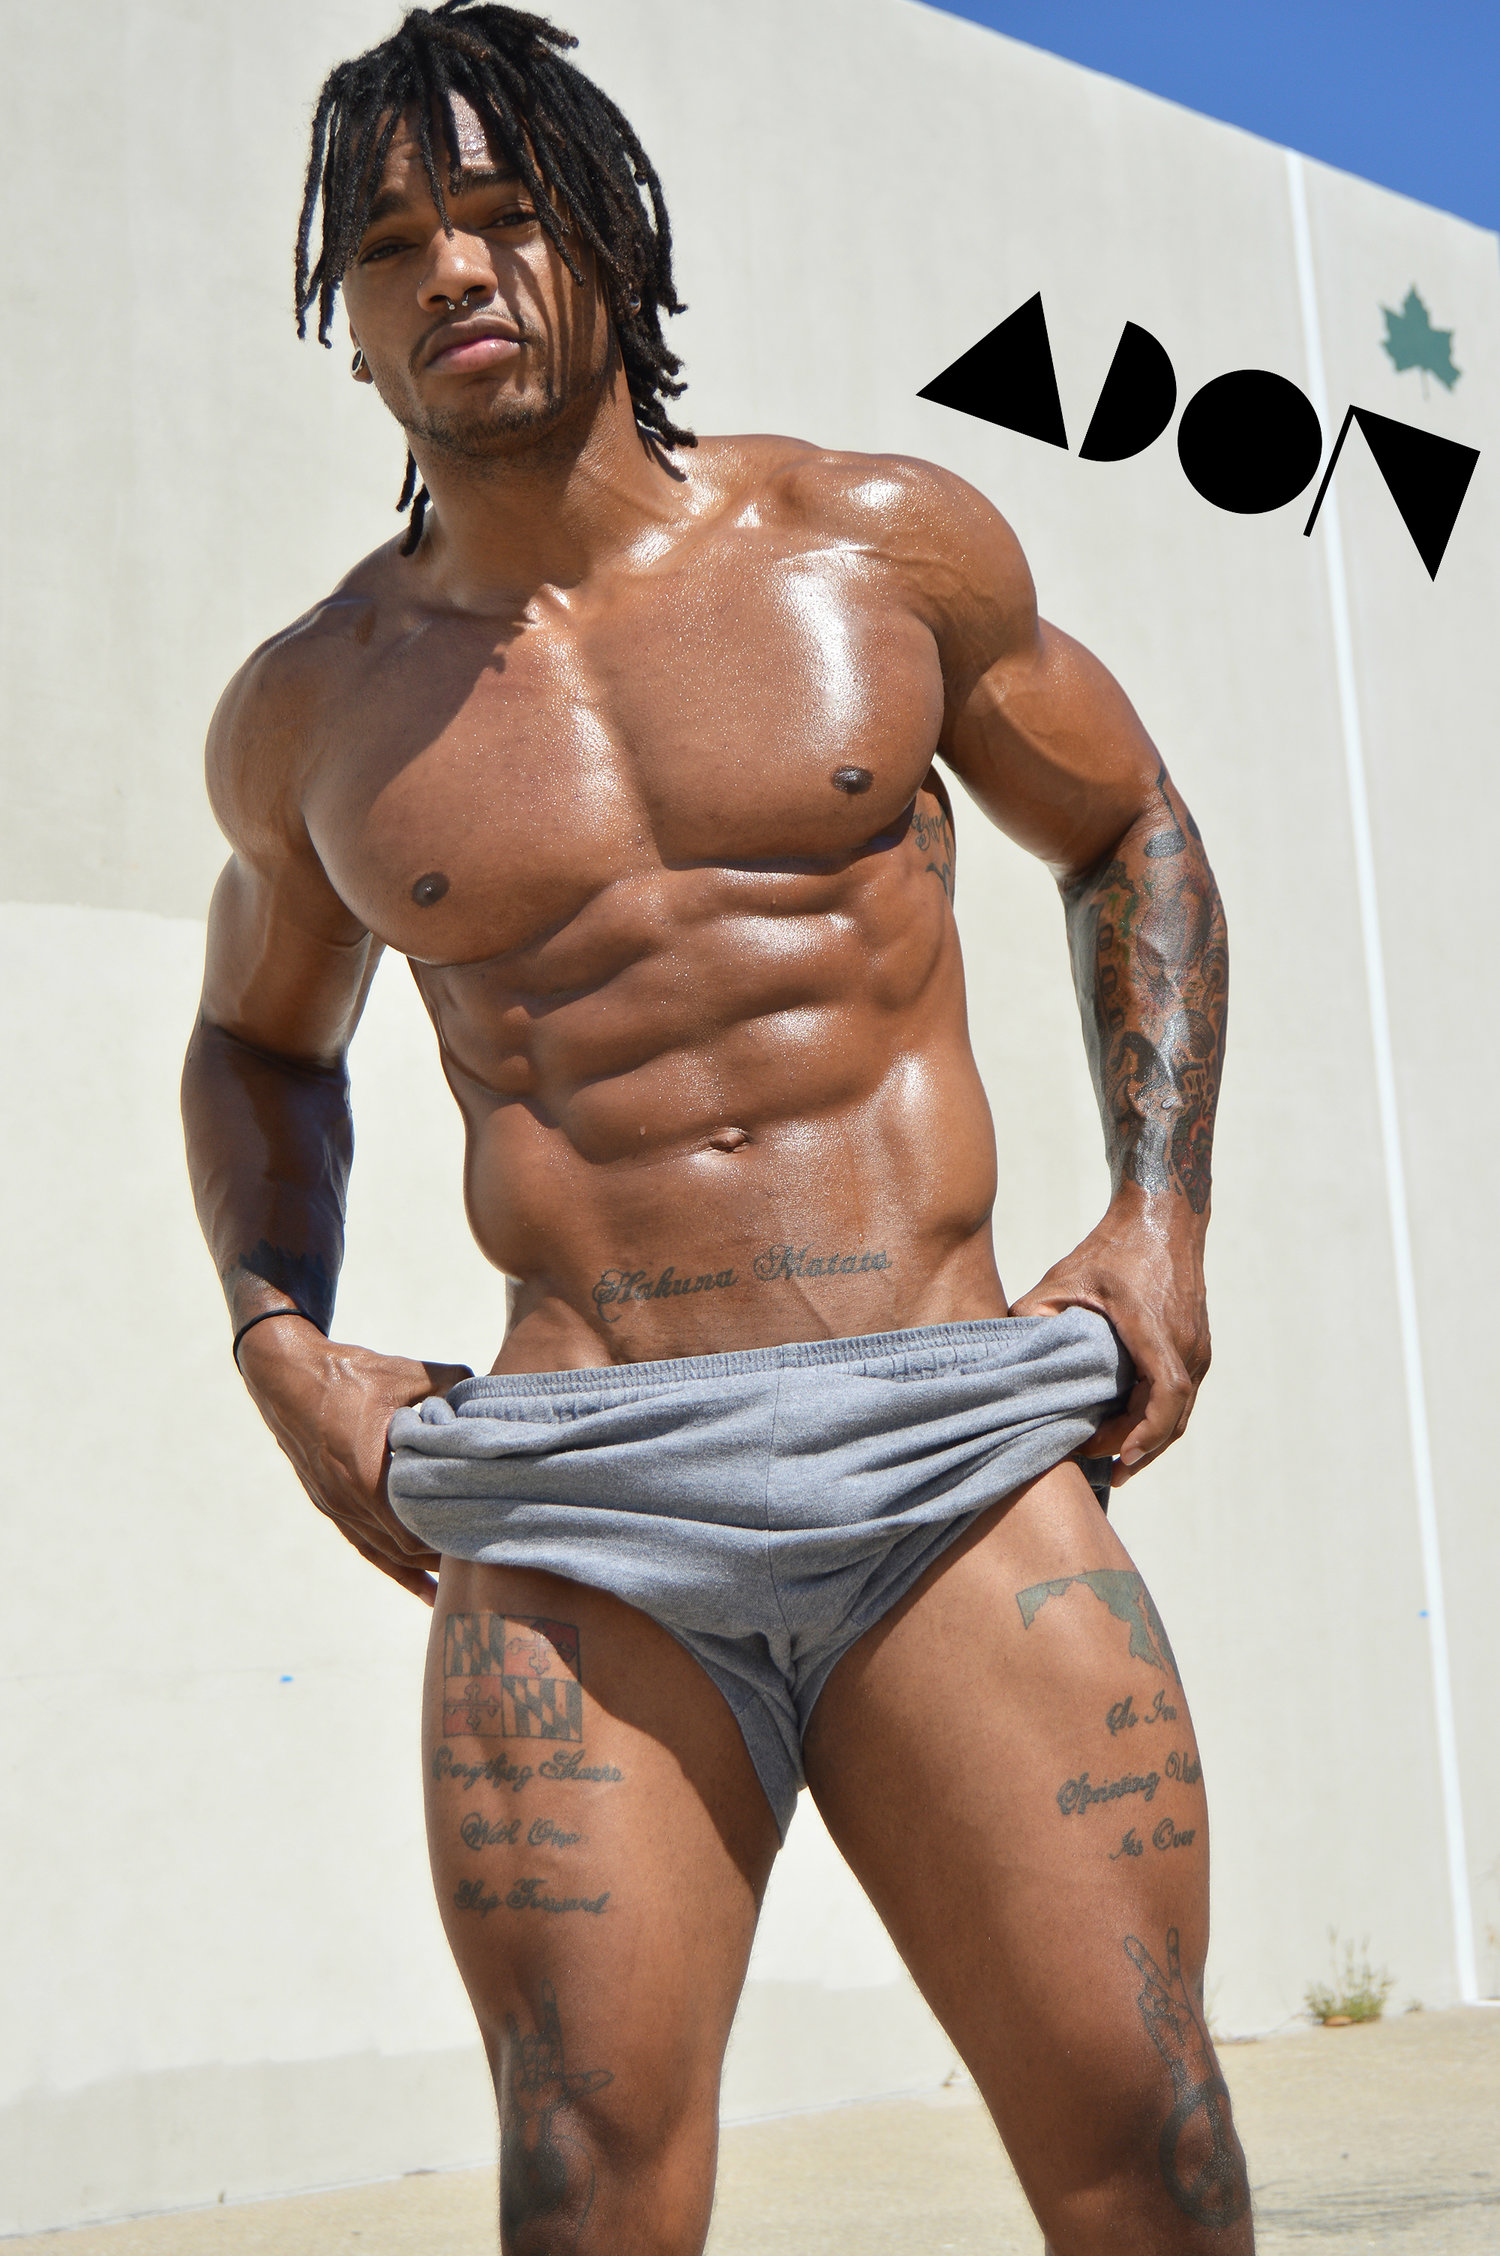 Adon Exclusive: Model Seth Holbrook By Price Brendon